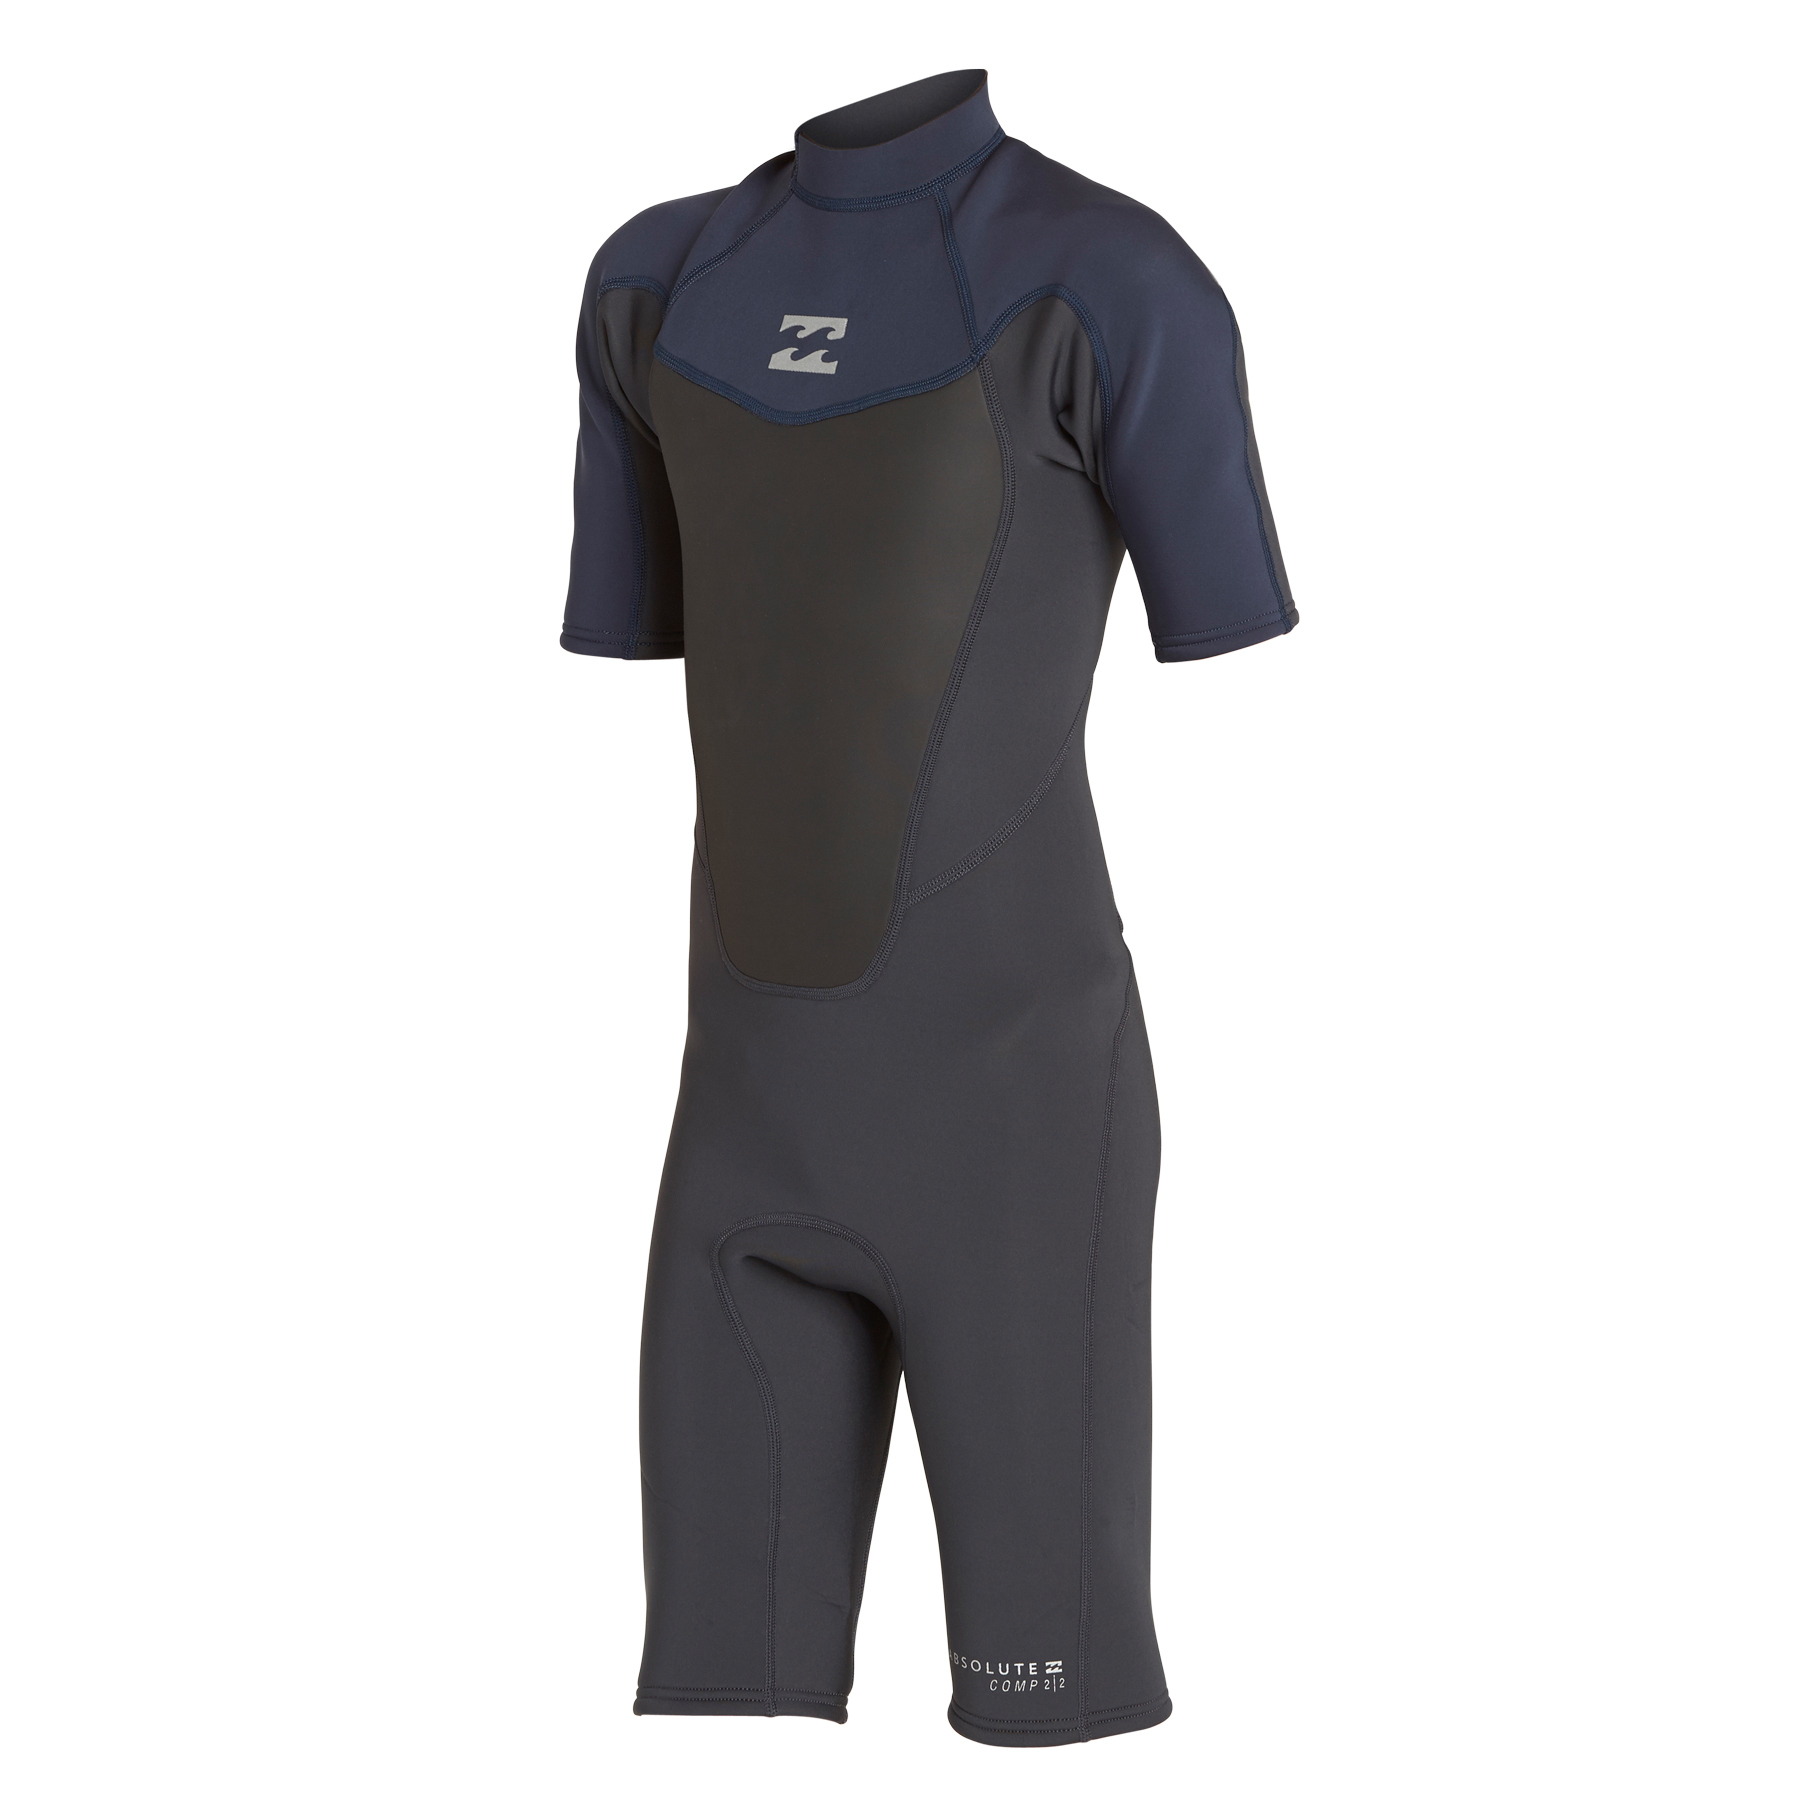 1a42fccb2ee Sum17 BILLABONG ABSOLUTE COMP SMM BZ SS - Wetsuits-Childrens   Blitz Surf  Shop NZ - Surf